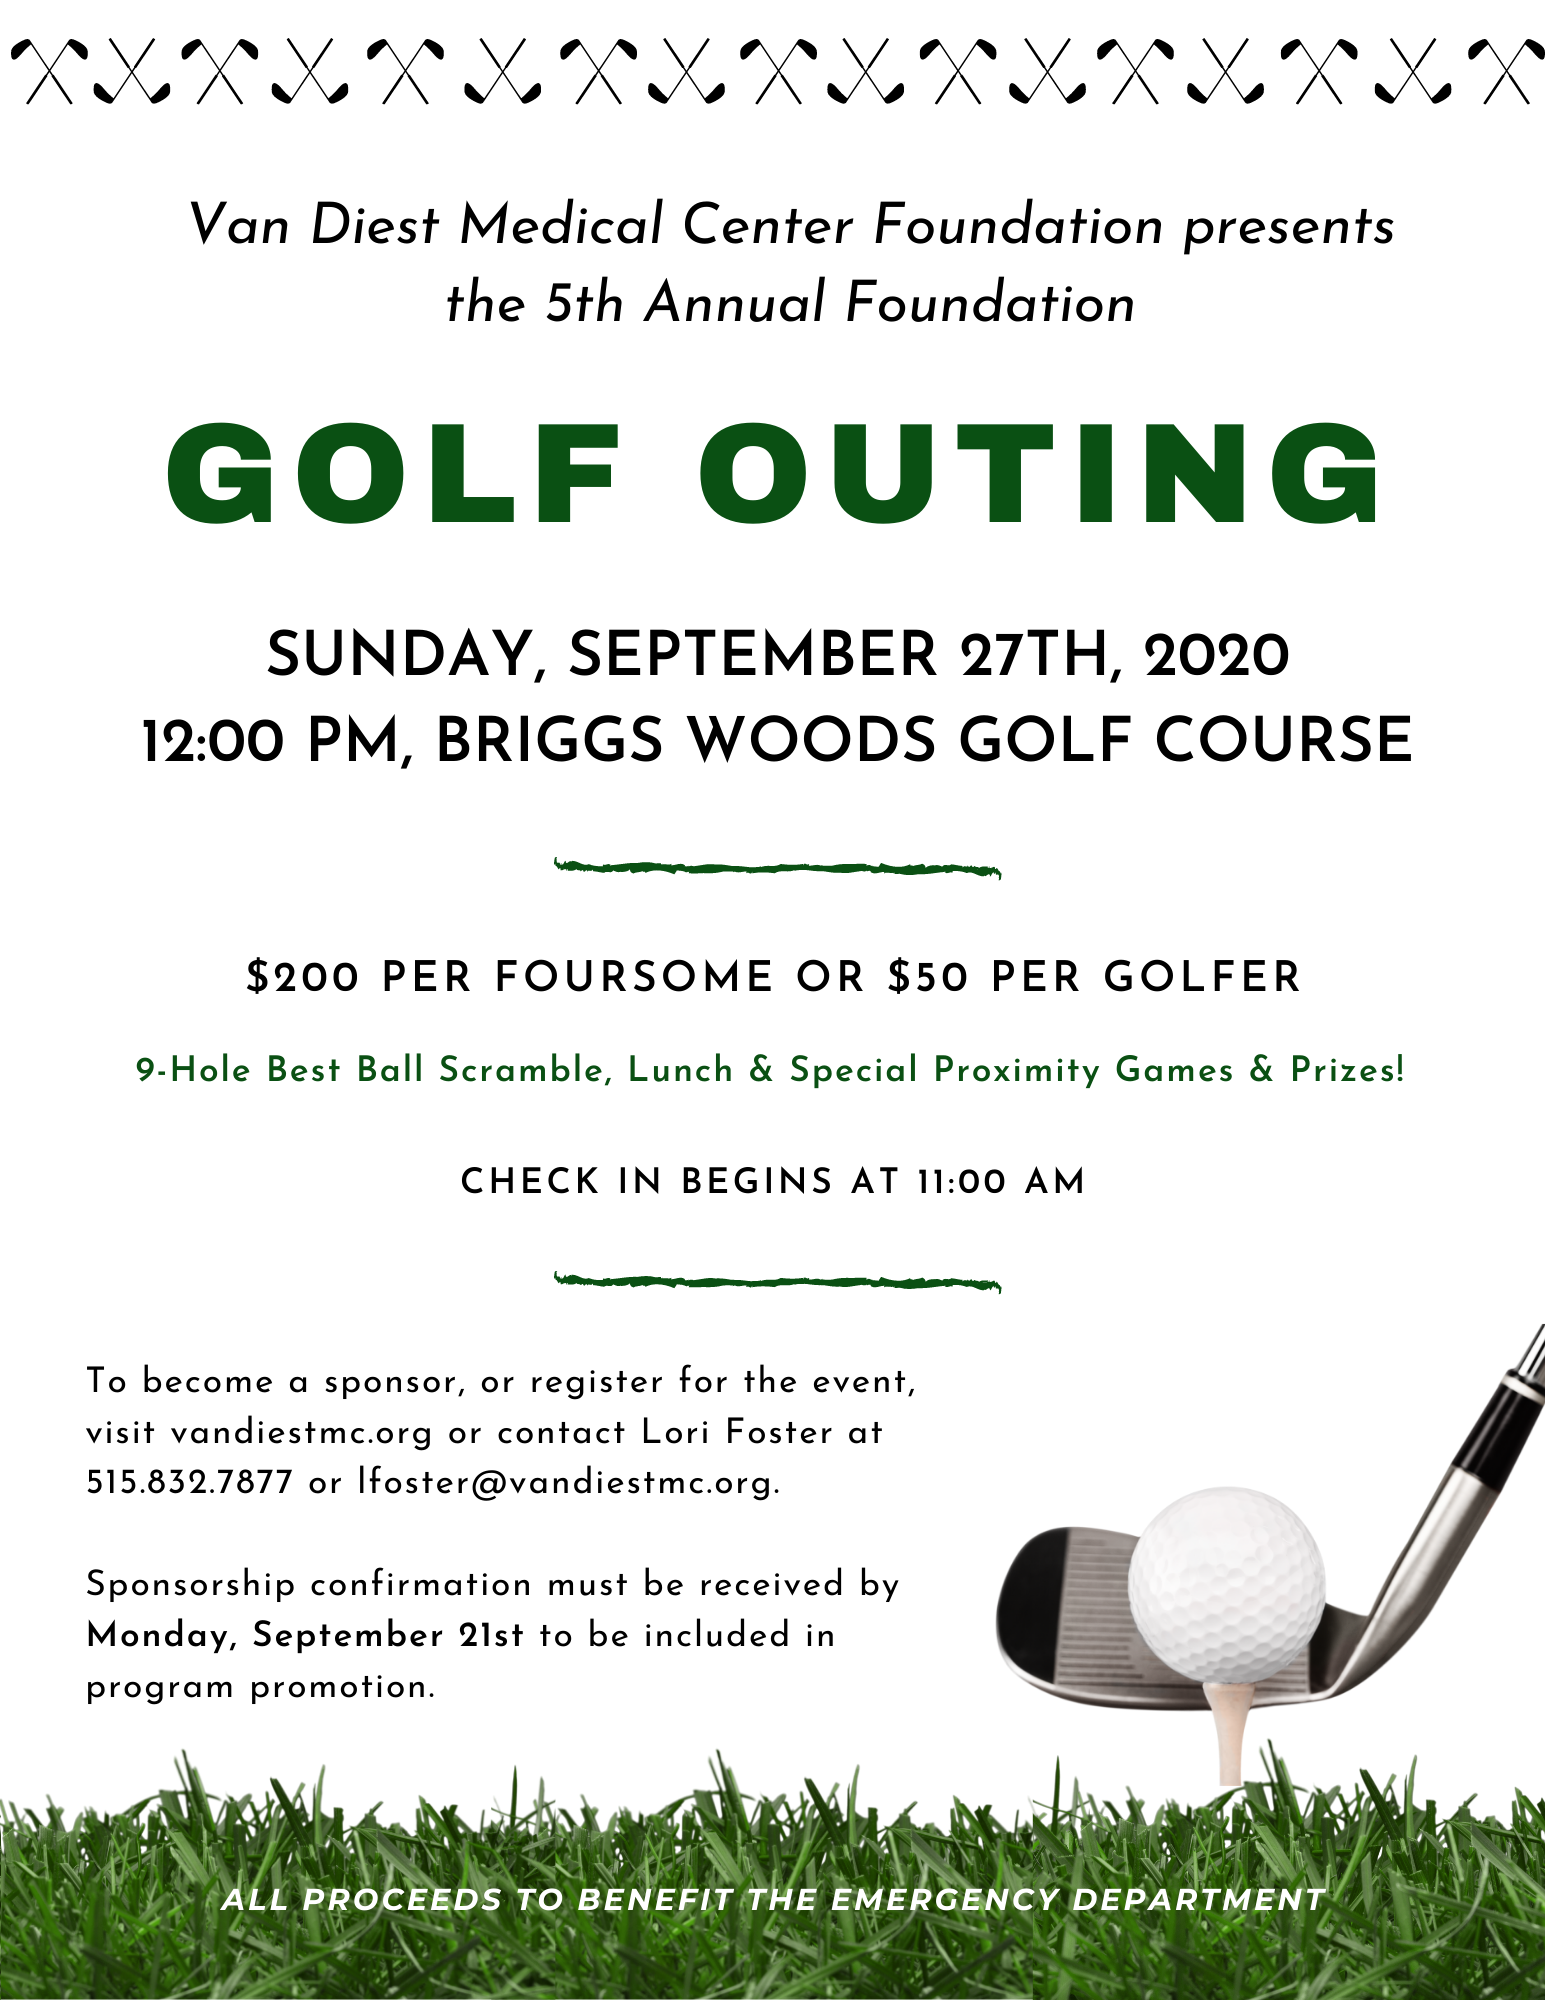 Foundation Golf Outing Flyer